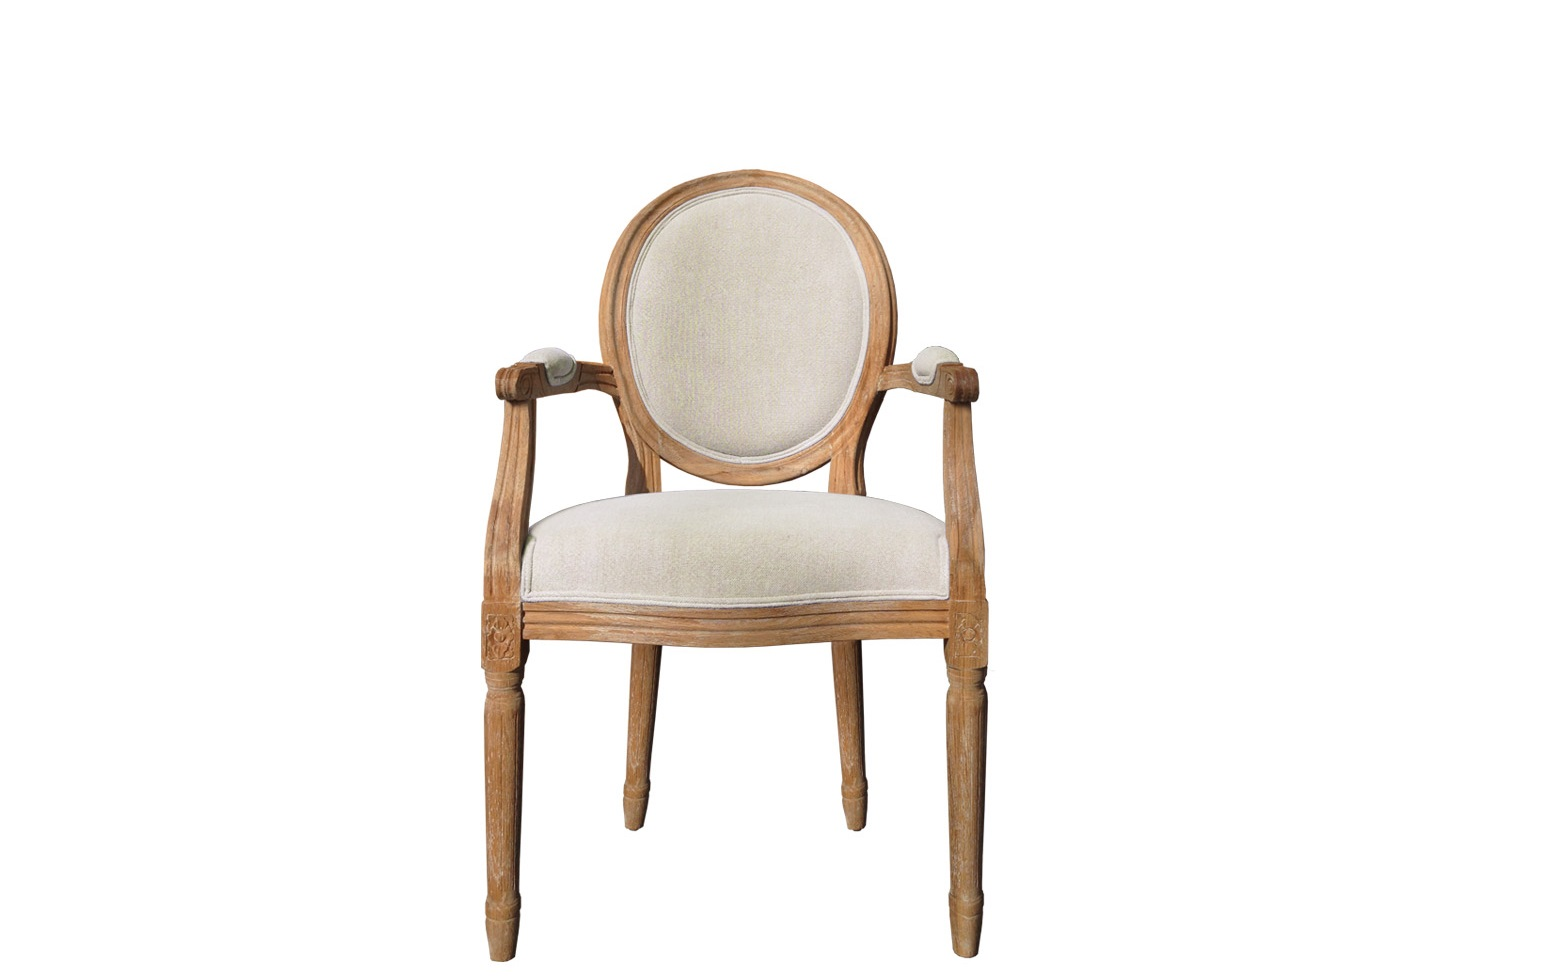 Стул Louis arm chair Gramercy 14358/14829